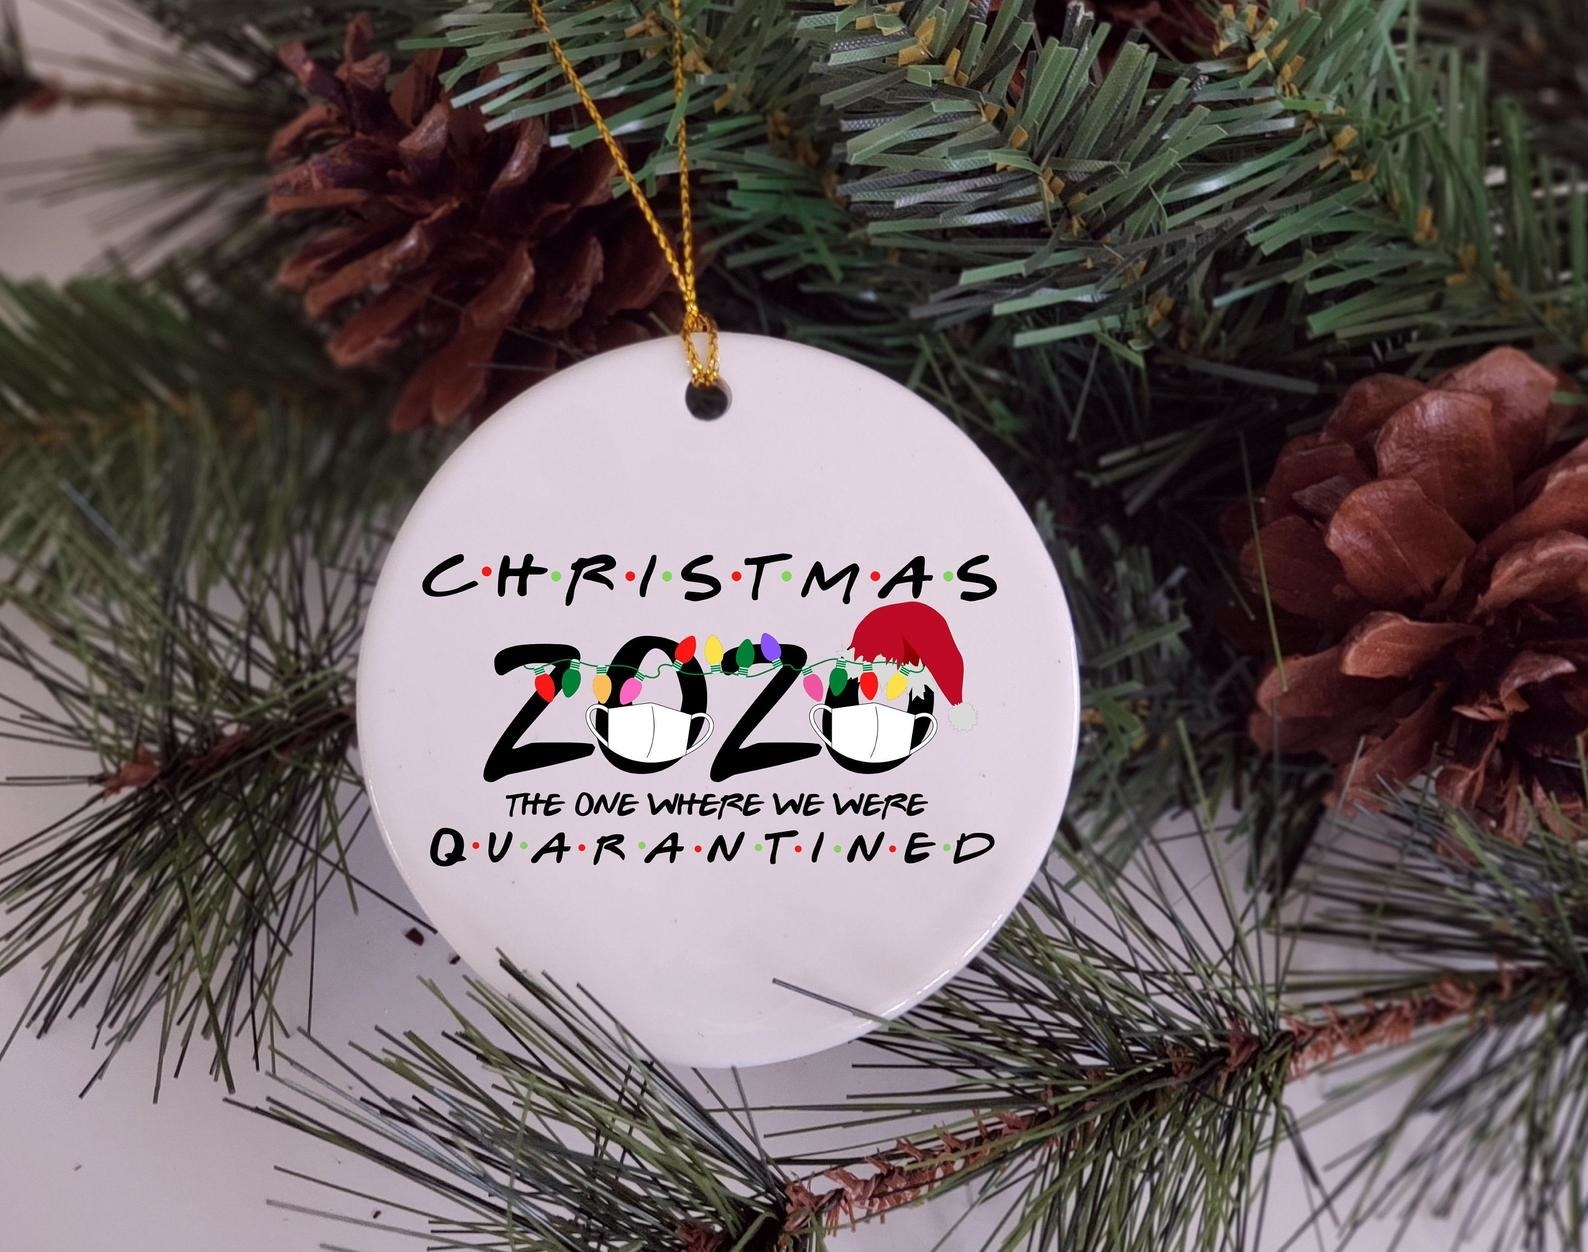 the ornament on a tree that says christmas 2020 the one where we all quarantined